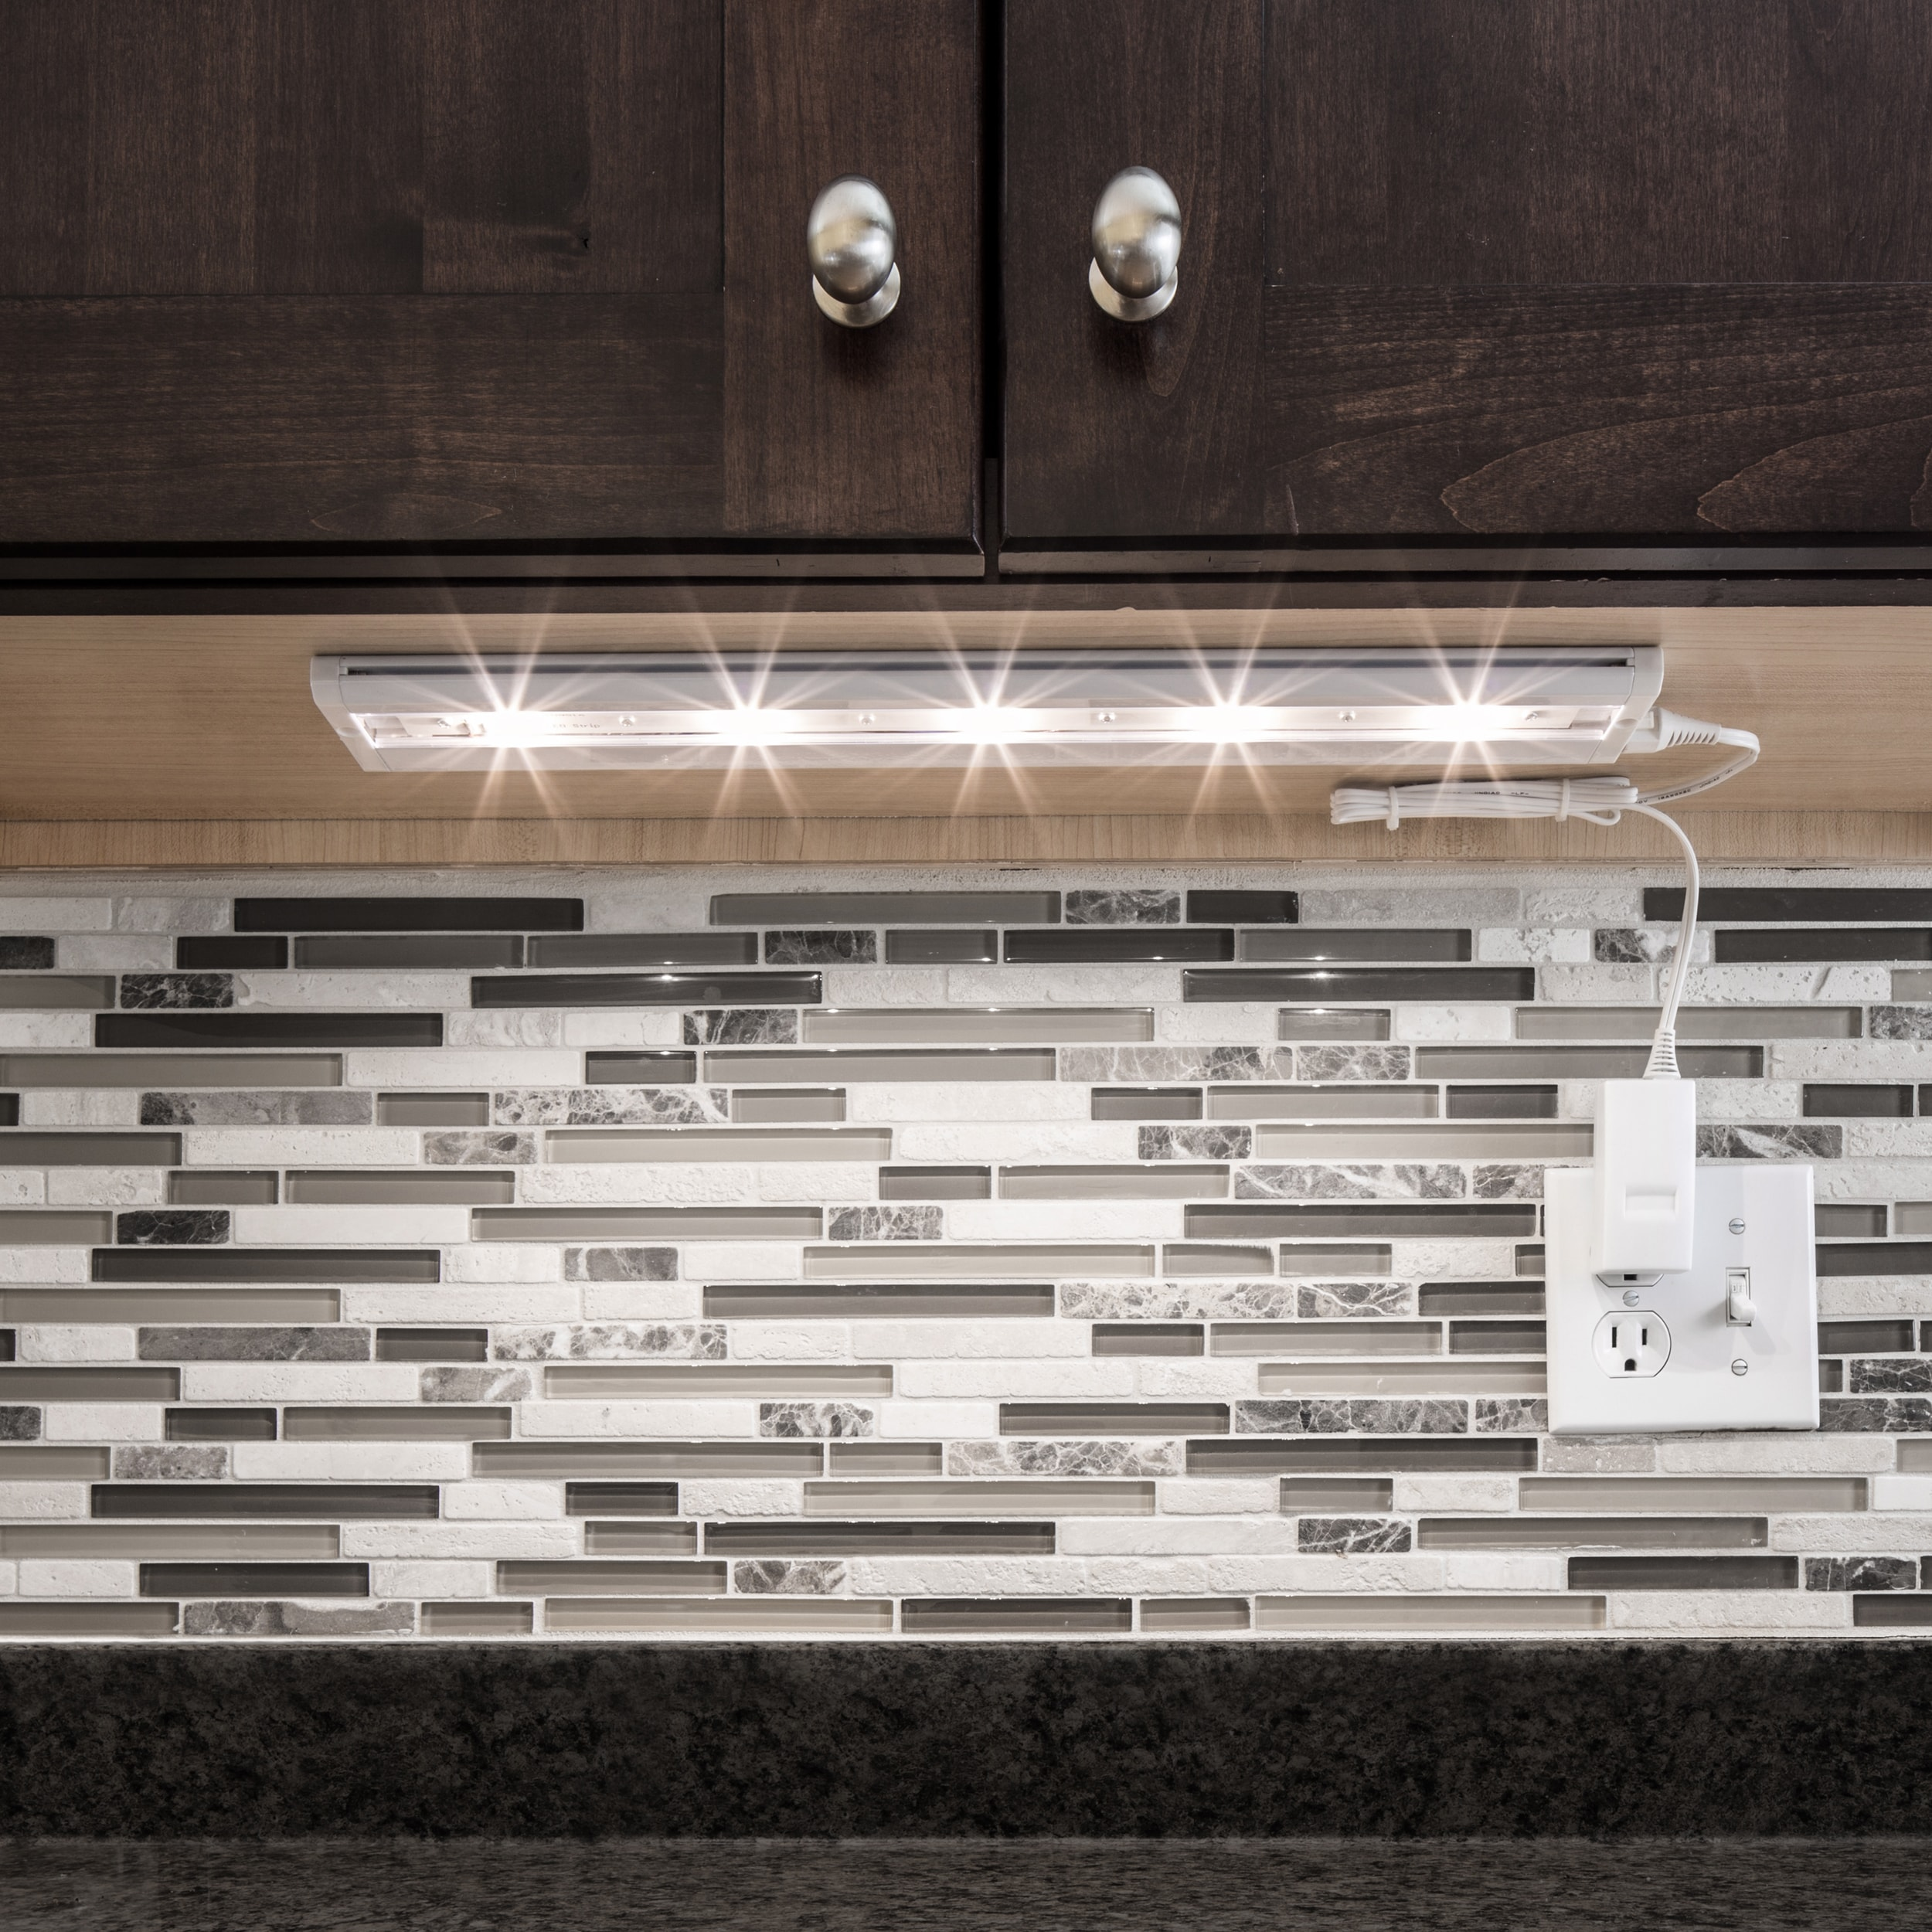 depot under of home cabinets led lighting battery direct light size legrand armacost lights full ribbon bar cabinet unbeatable kitchen tape puck hardwired wire operated lowes